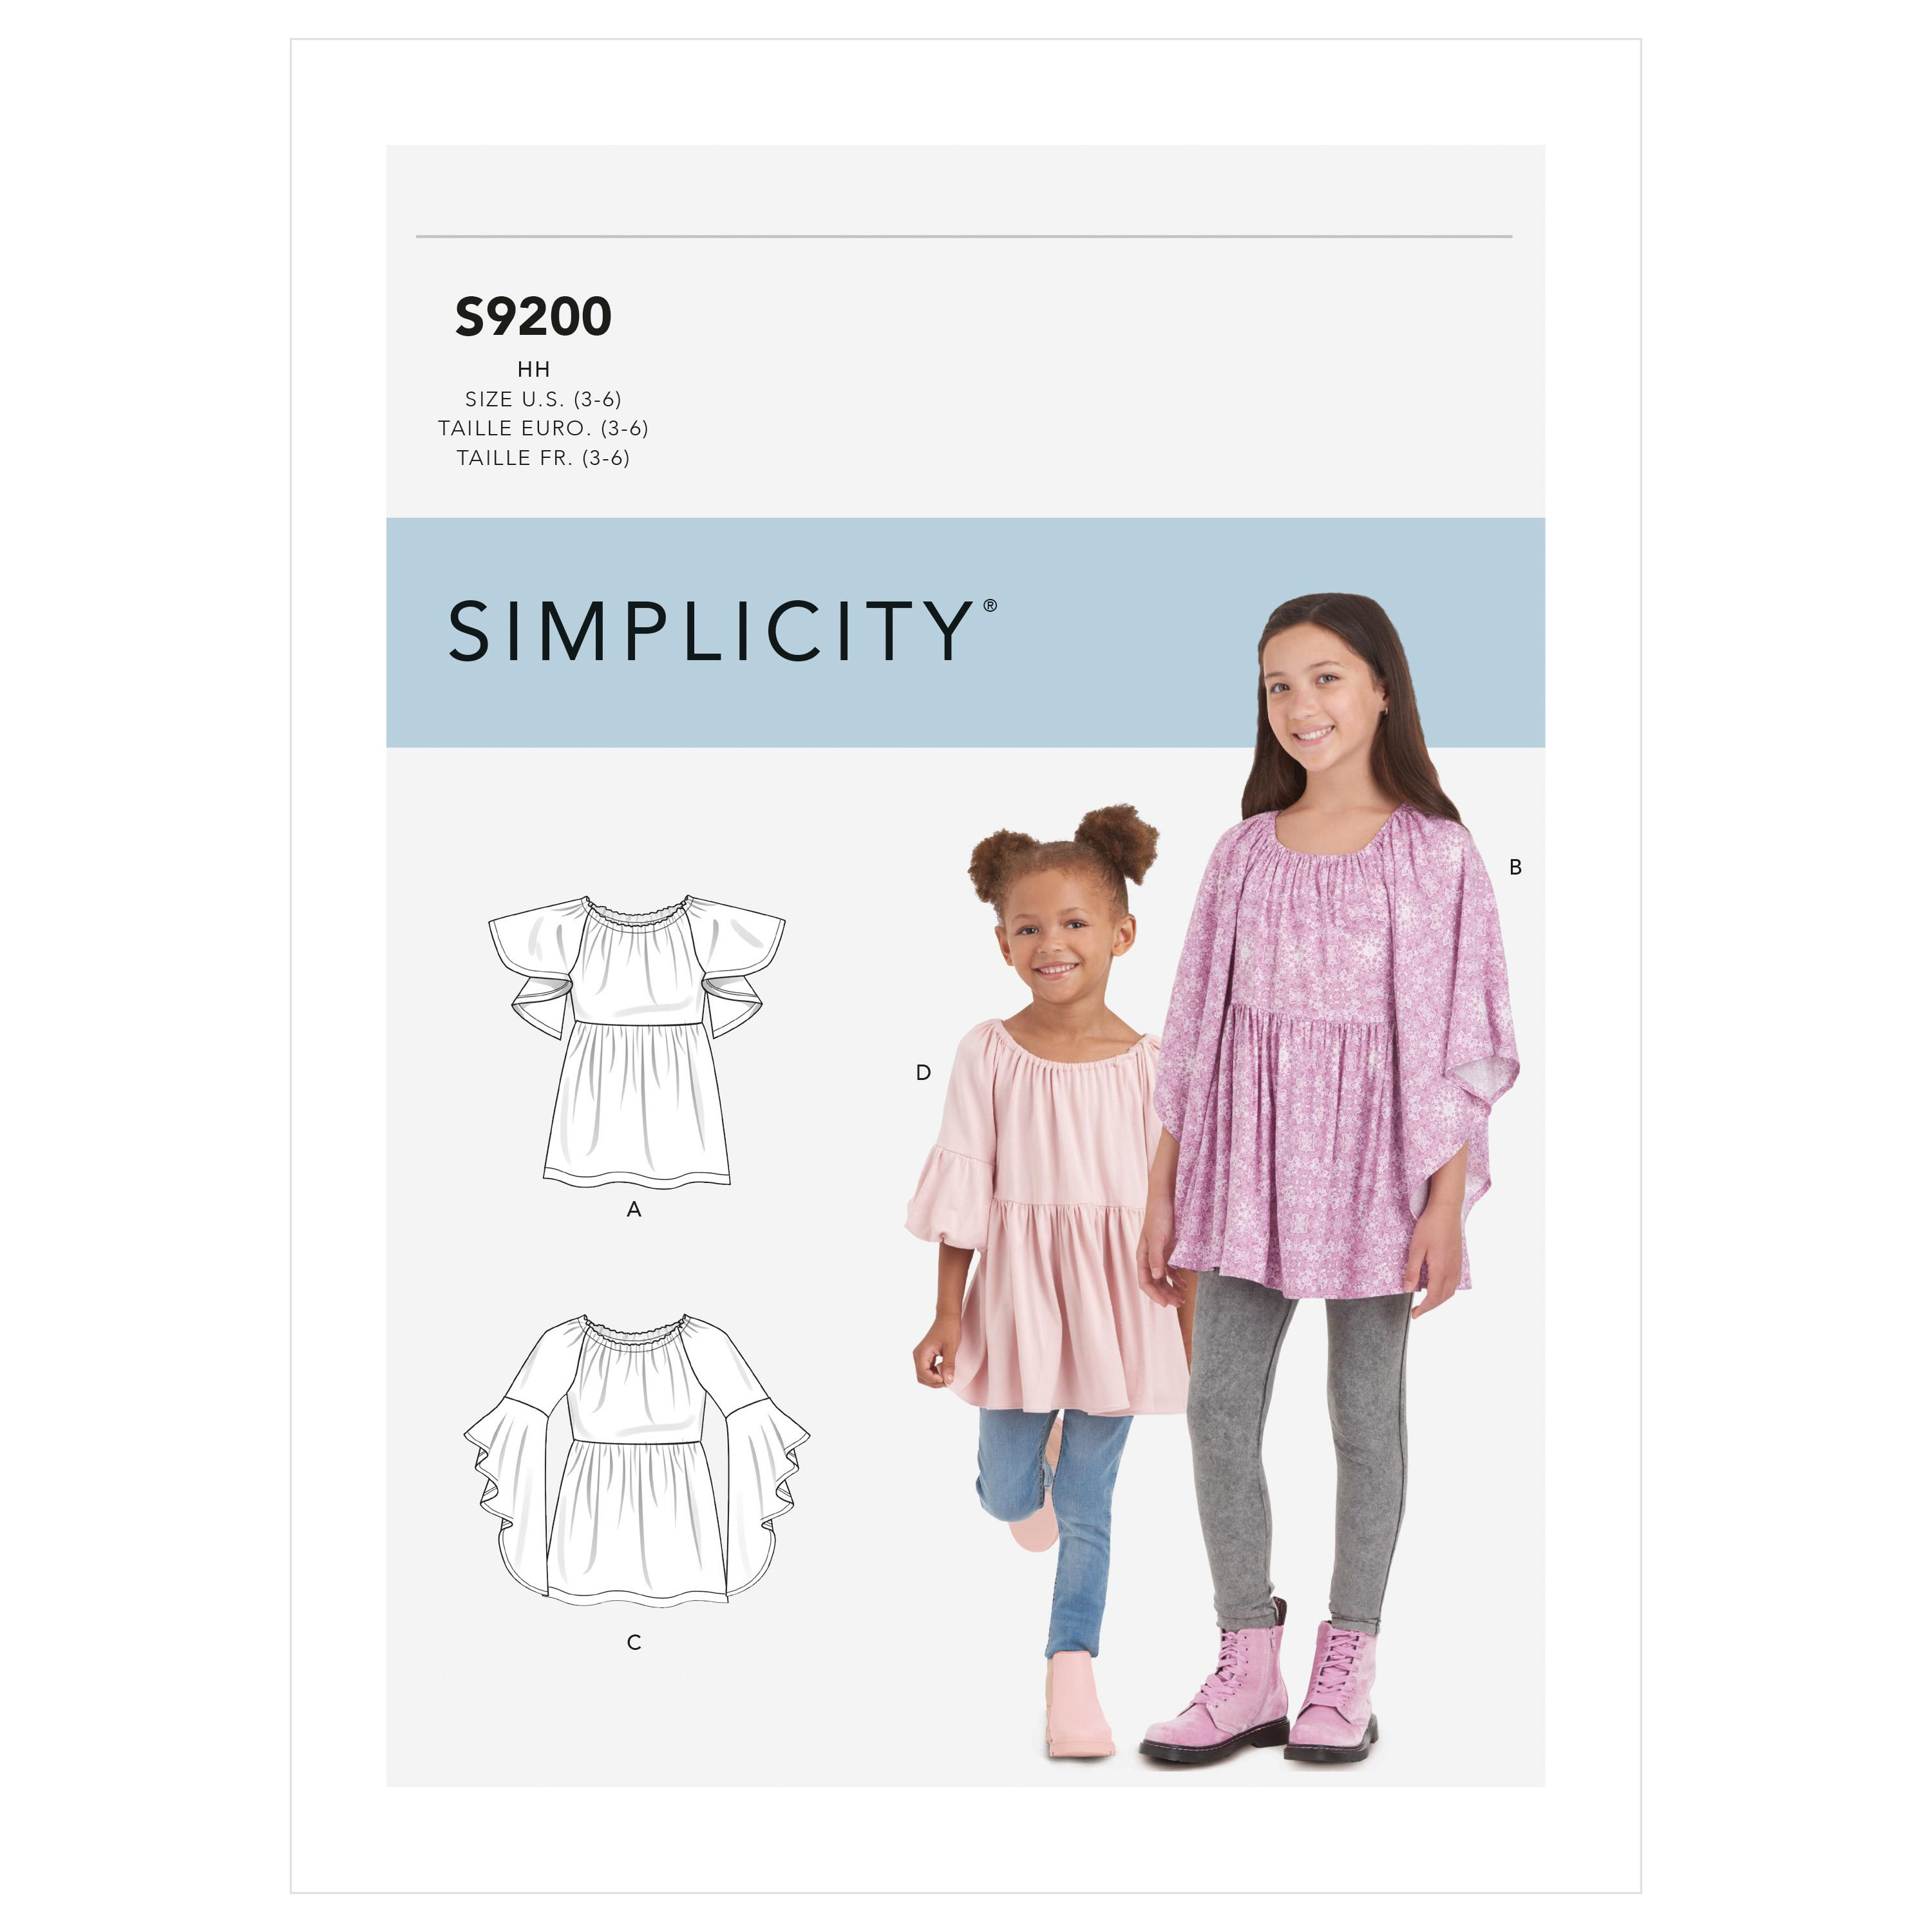 Simplicity Sewing Pattern S9200 Children's & Girls' Tops